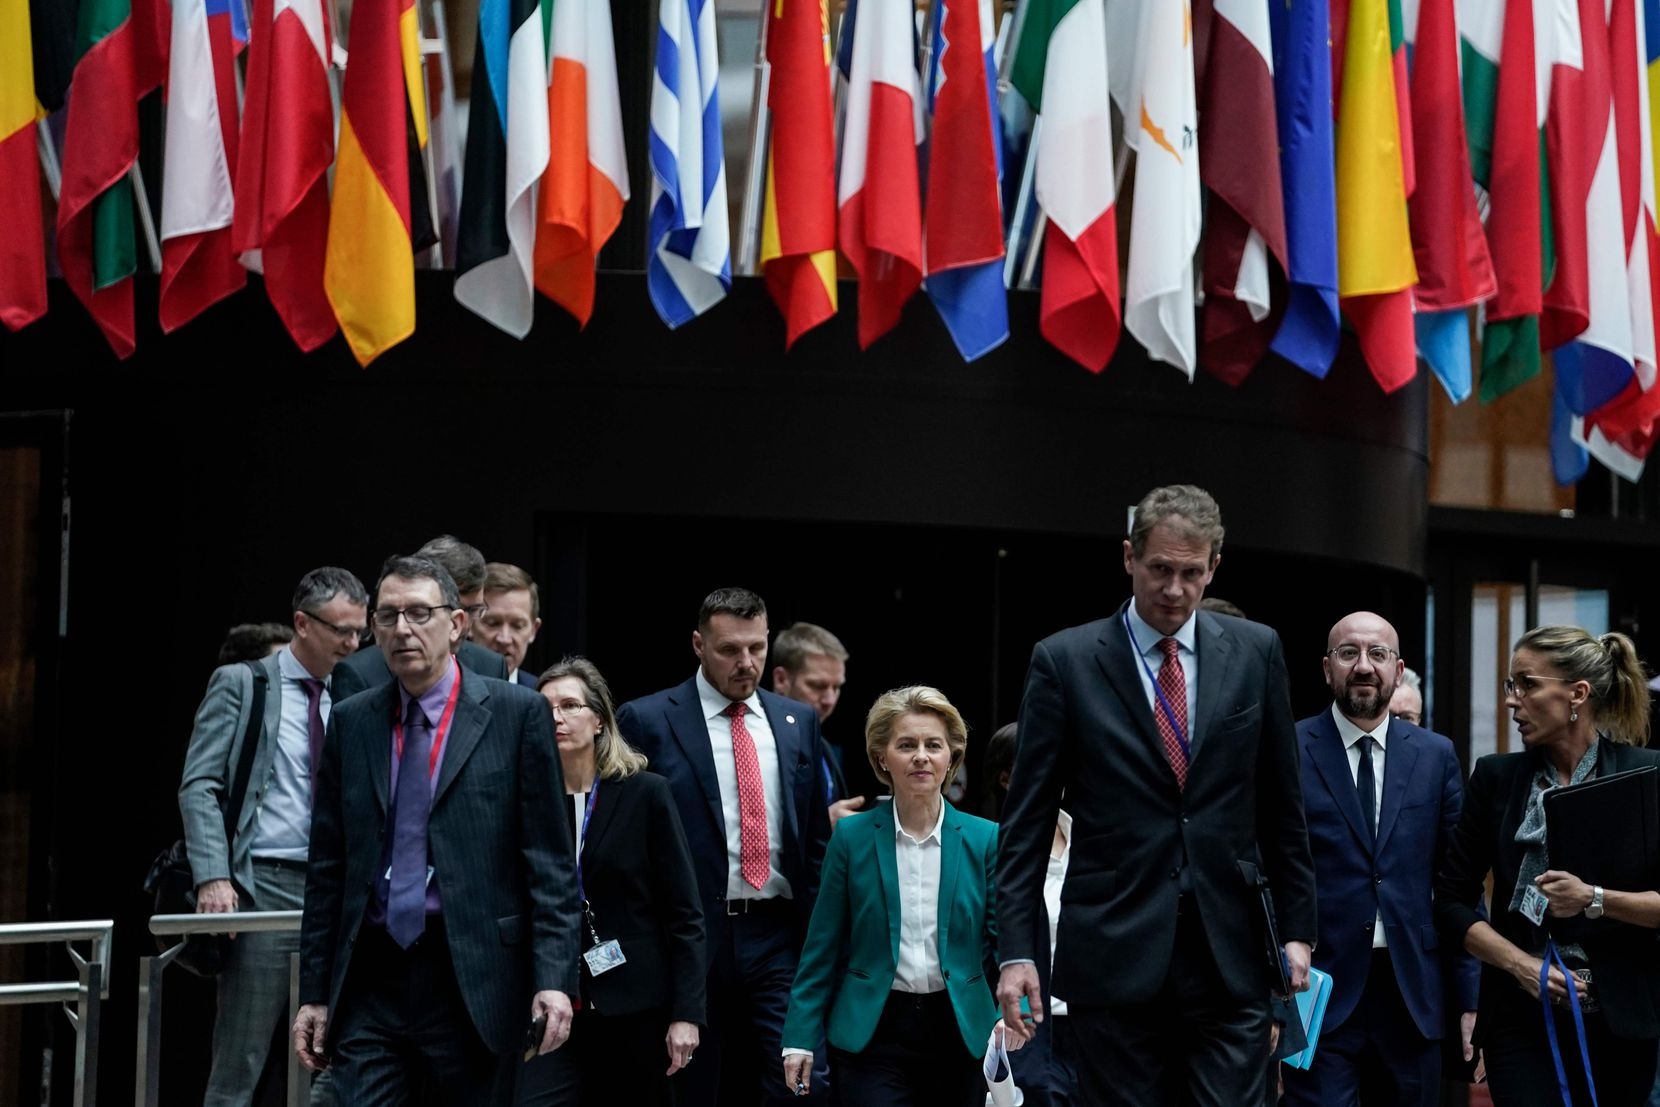 EU President of Council Charles Michel (second from right) and European Commission President Ursula von der Leyen (center) arrive to give a joint press conference after a G7 Leaders' videoconference on COVID-19 at the EU headquarters in Brussels.